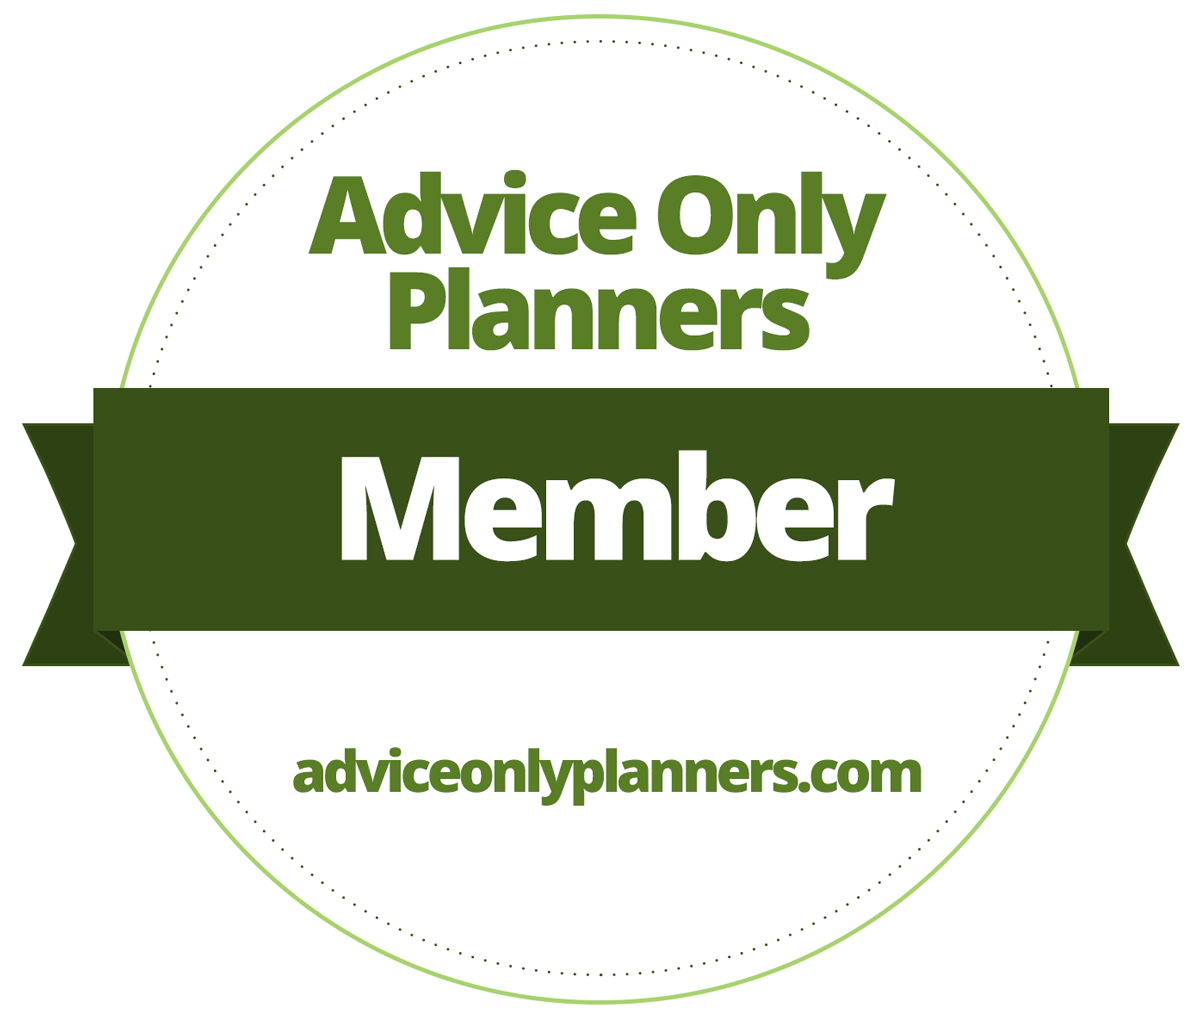 Advice-Only-Planner-Badge-v2.png